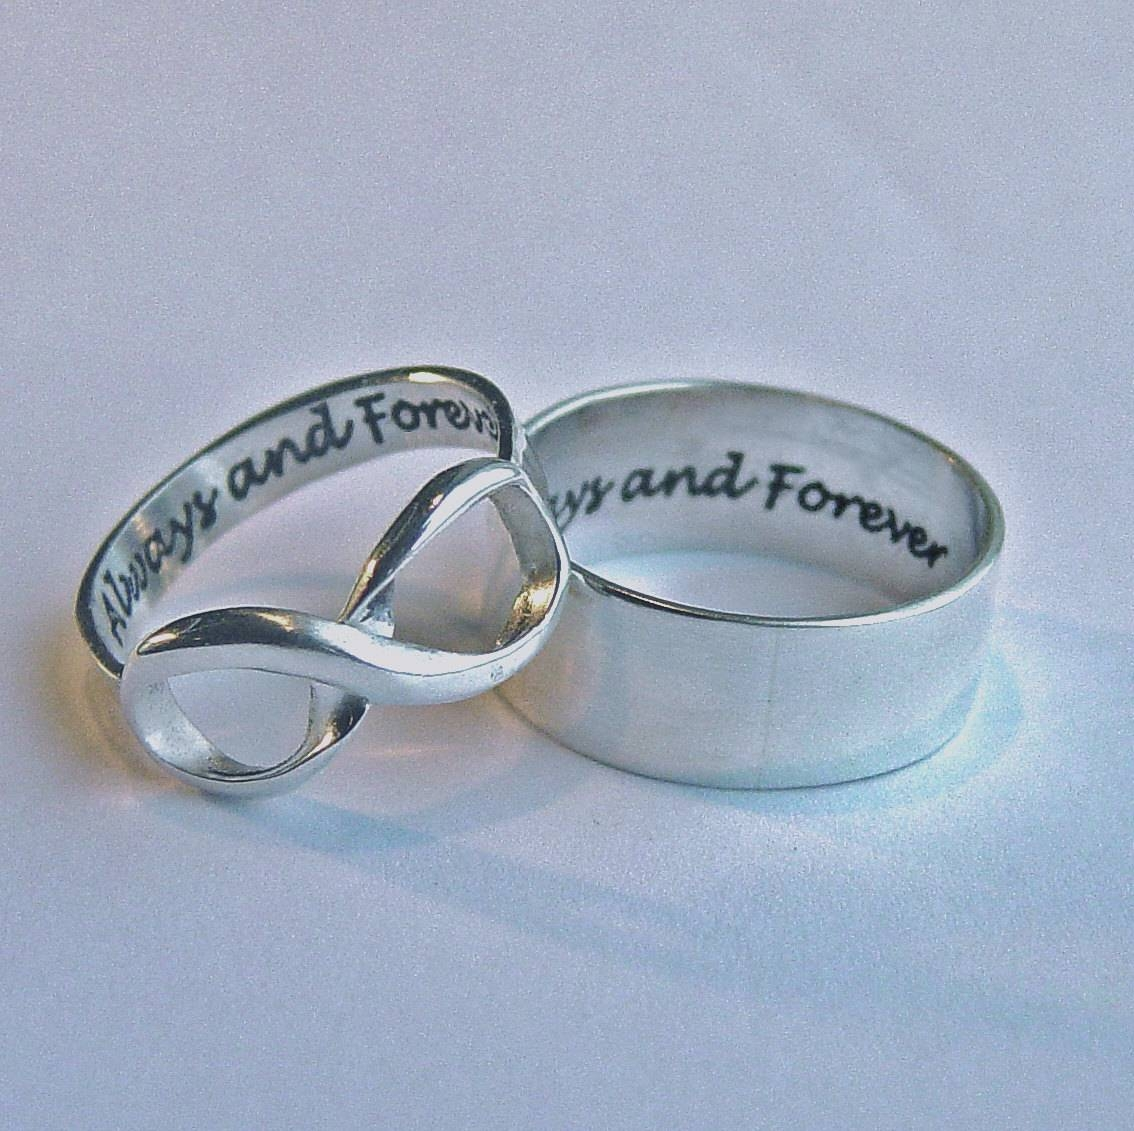 His And Hers Jewelry Infinity Ring Set Always & Forever Intended For Most Up To Date Personalized Anniversary Rings (Gallery 9 of 25)